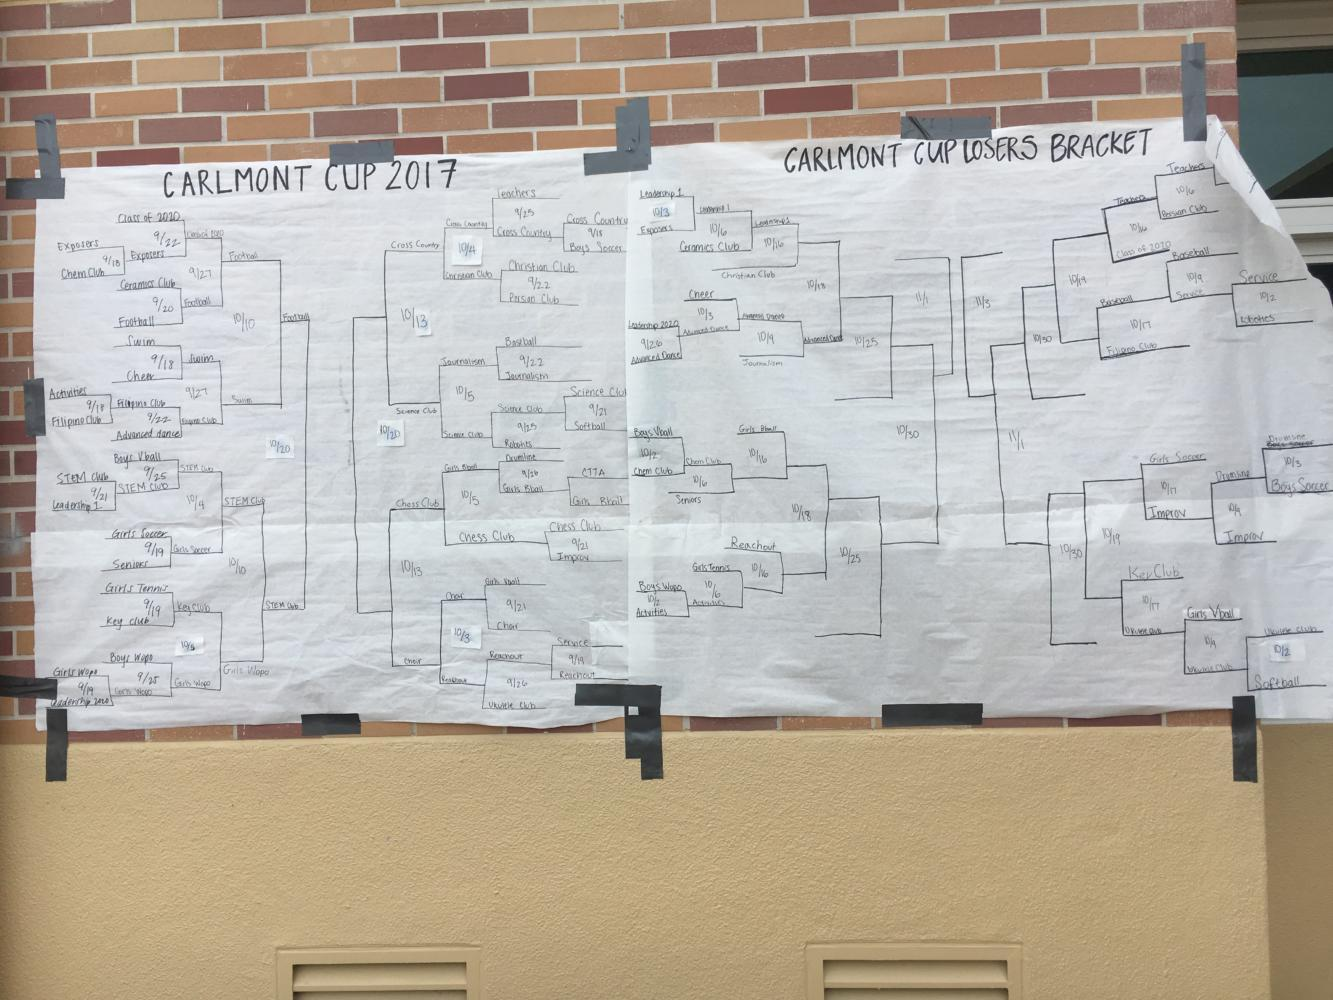 As the games continue on throughout October, more and more teams are eliminated. On Oct. 20, the last two teams of the winner's bracket will play against each other and on Nov. 3, the last two teams of the loser's bracket will play each other.